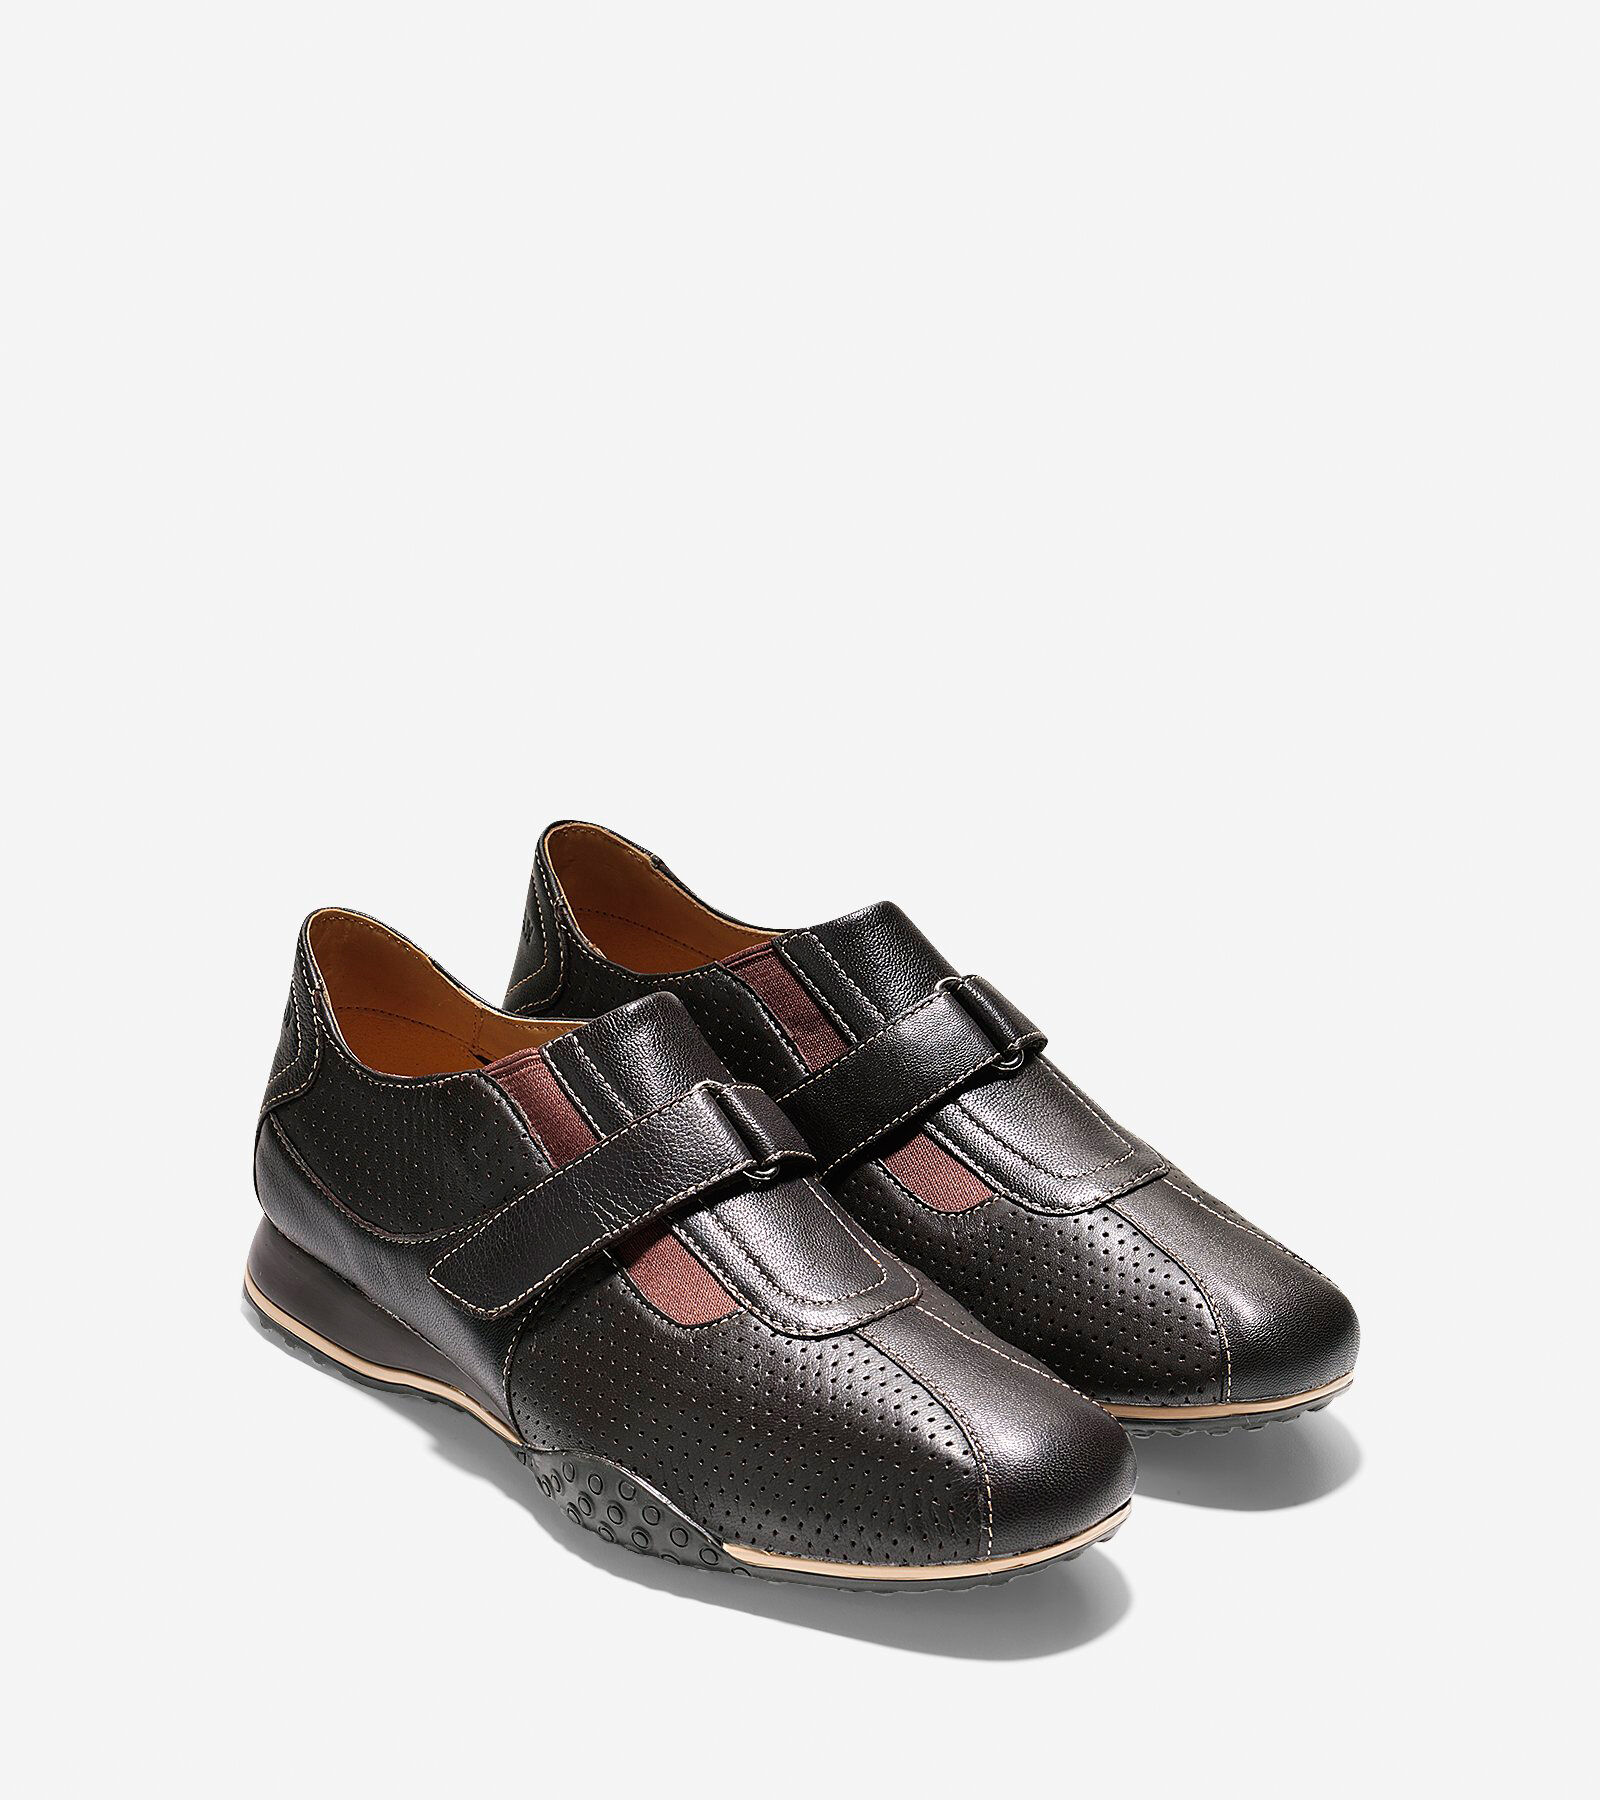 ... Grand Estadio Loafer; Grand Estadio Loafer. #colehaan